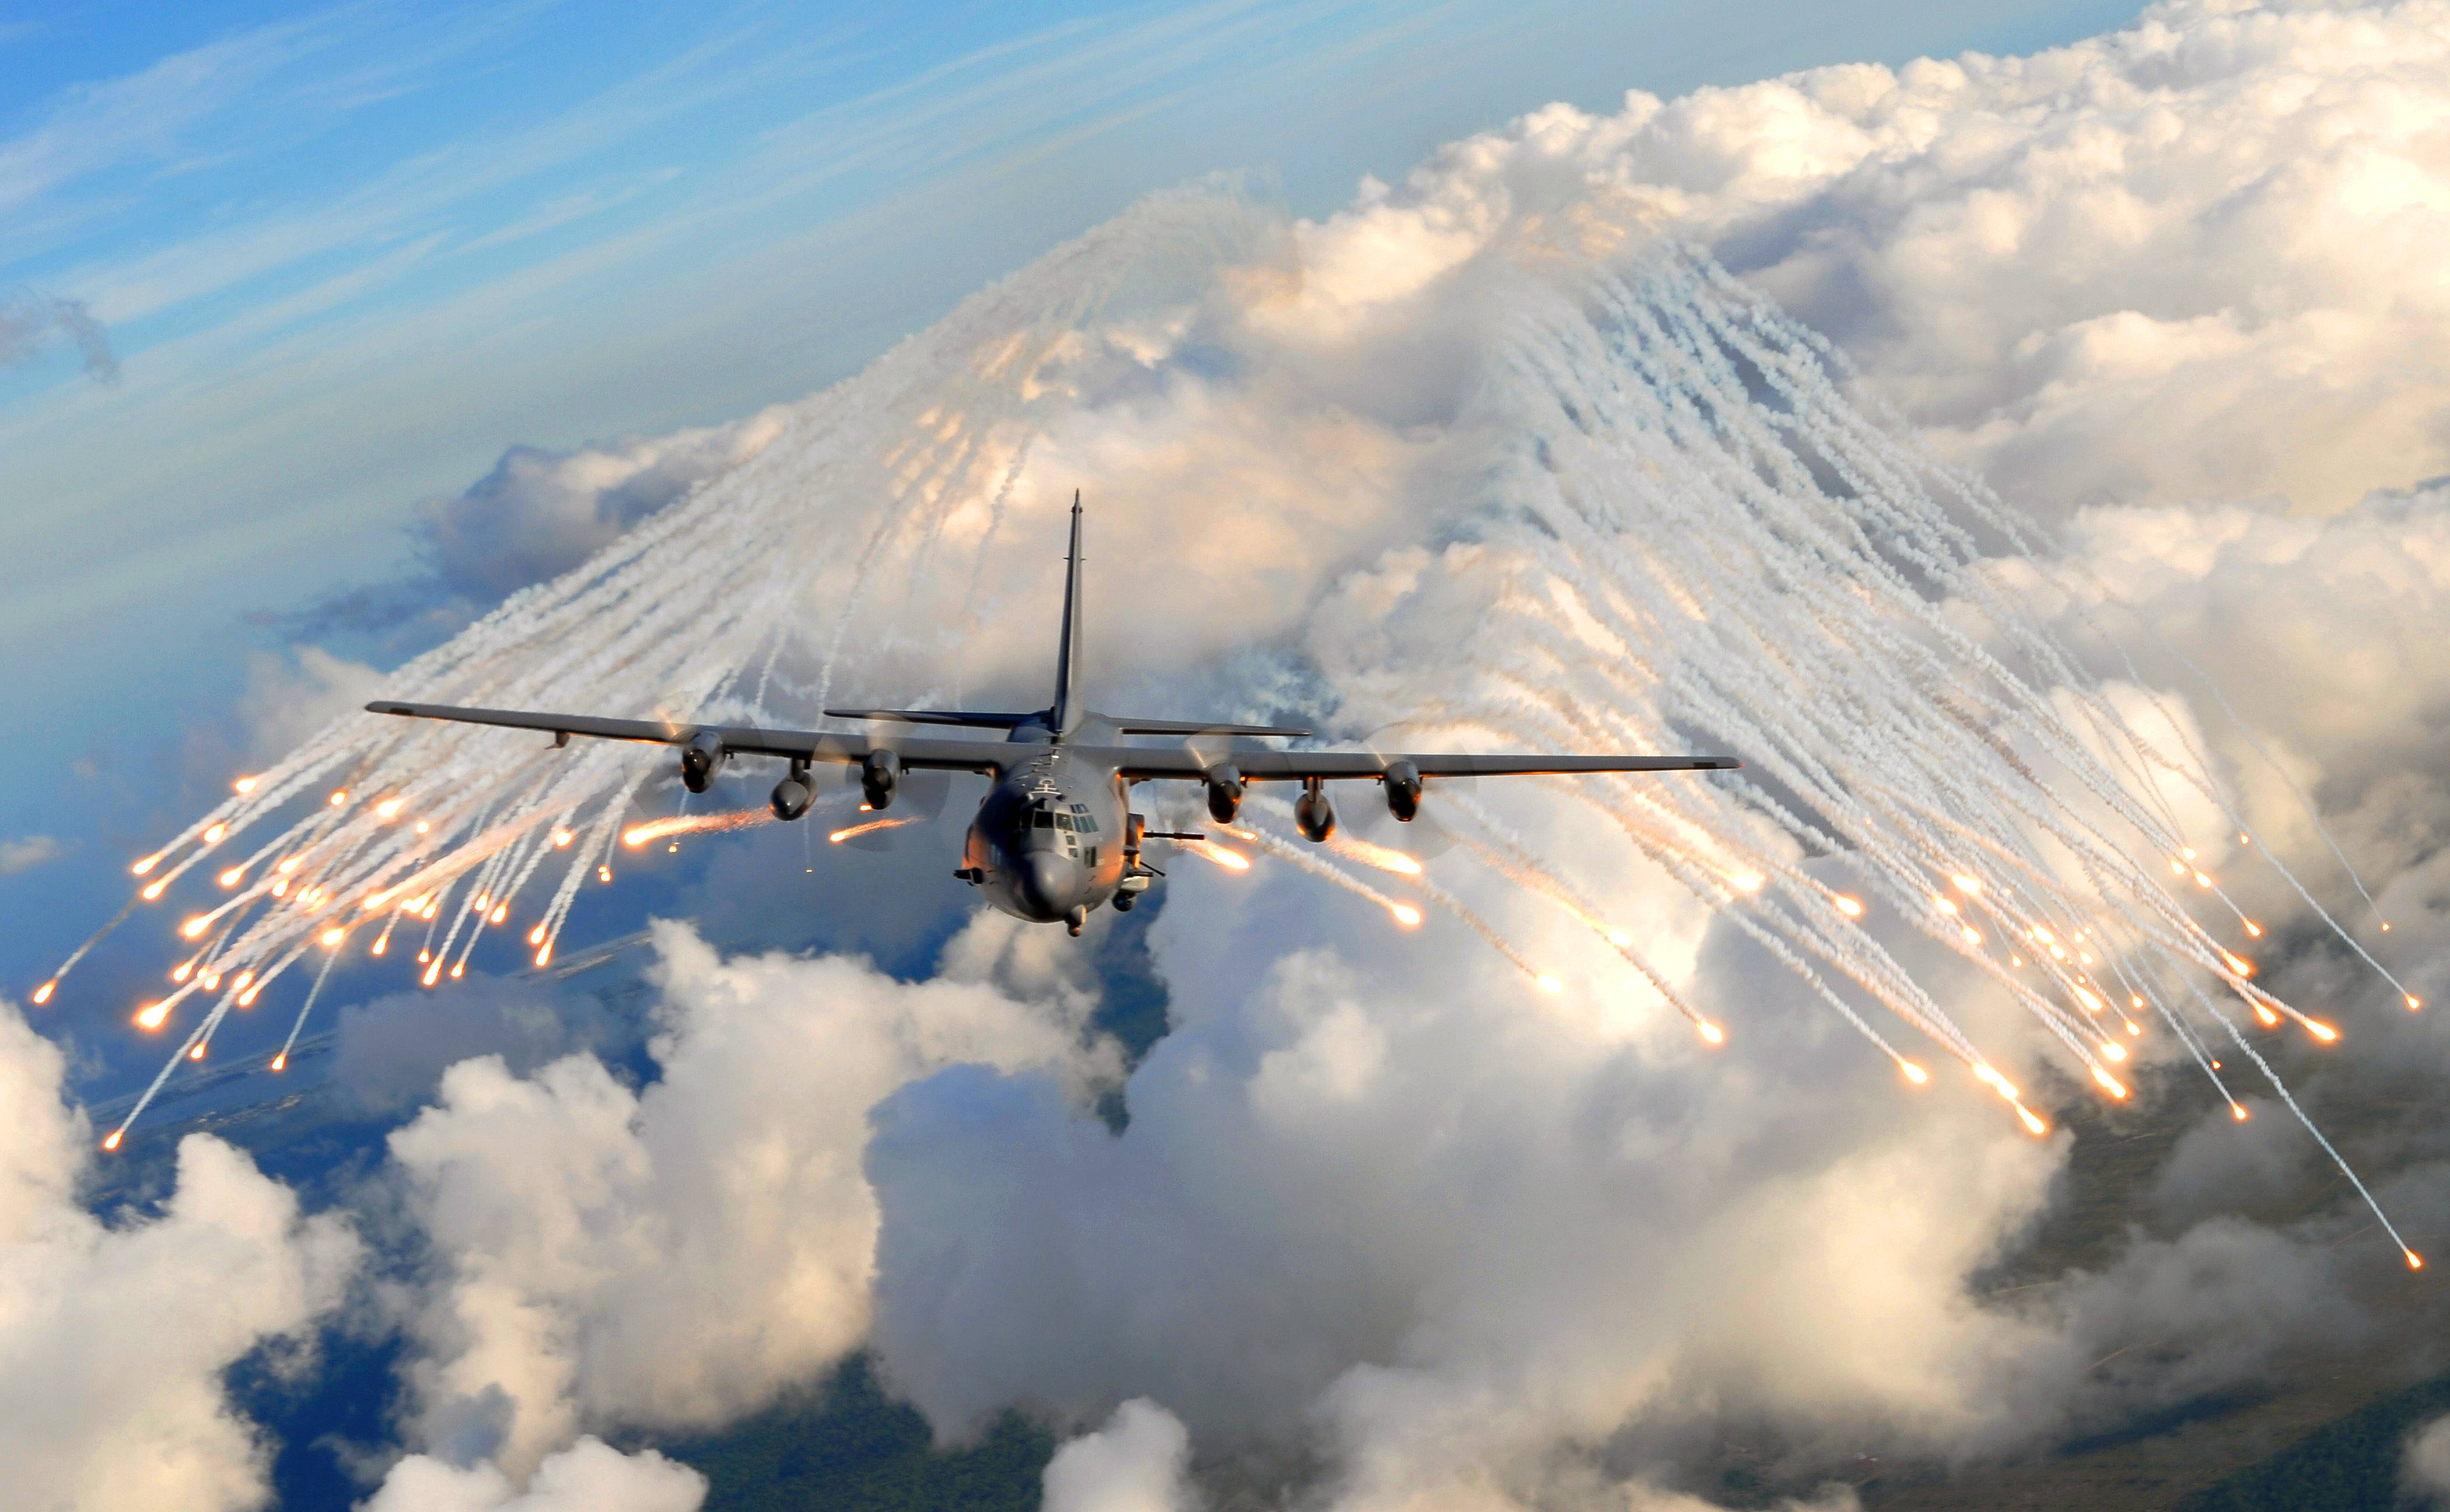 Lockheed AC-130 Wallpapers - Wallpaper Cave